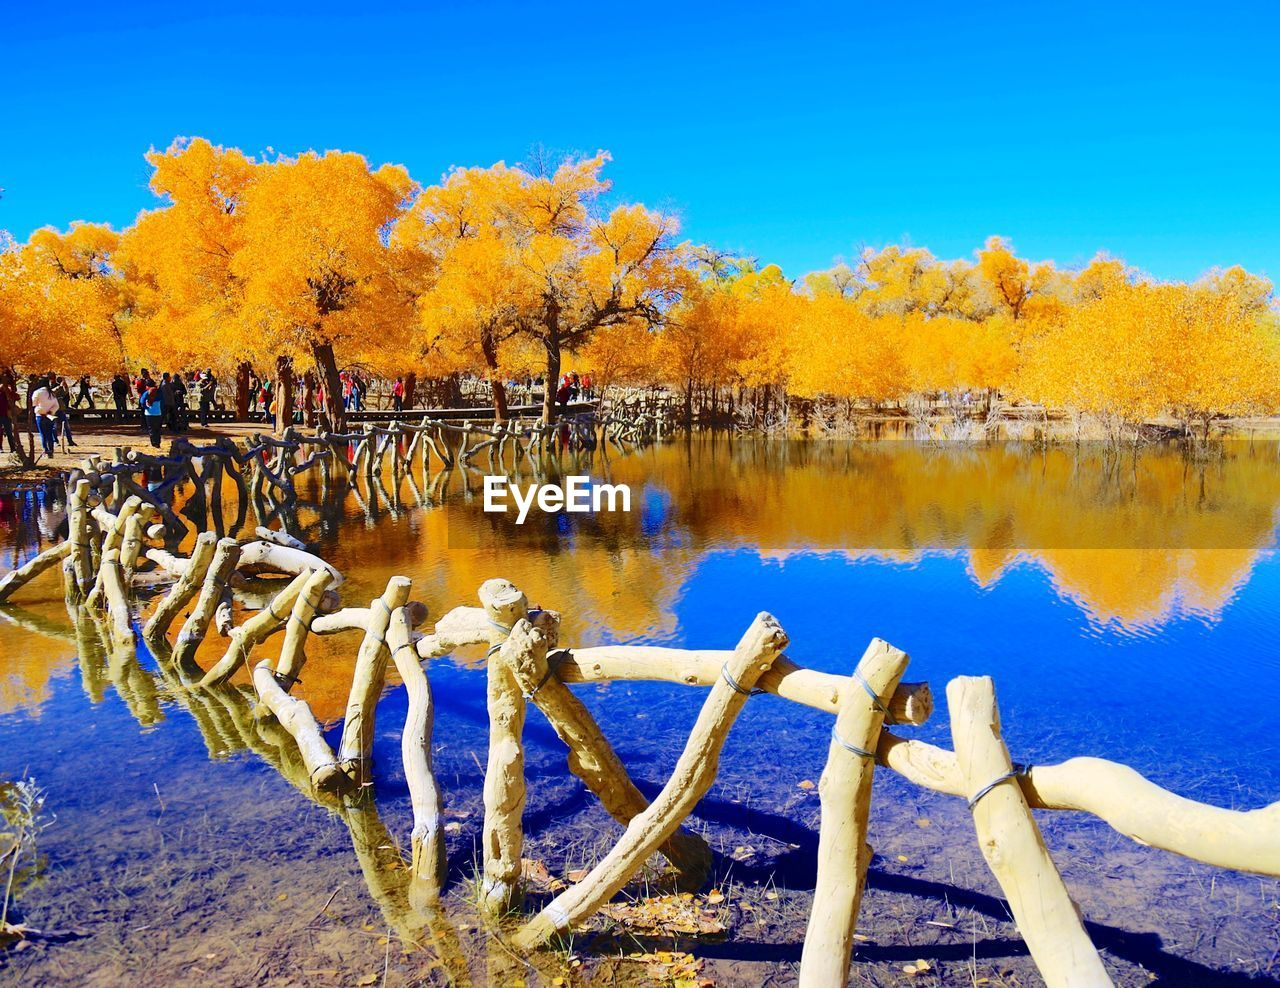 tree, water, autumn, nature, reflection, plant, lake, sky, day, beauty in nature, change, tranquility, no people, scenics - nature, tranquil scene, orange color, outdoors, non-urban scene, leaf